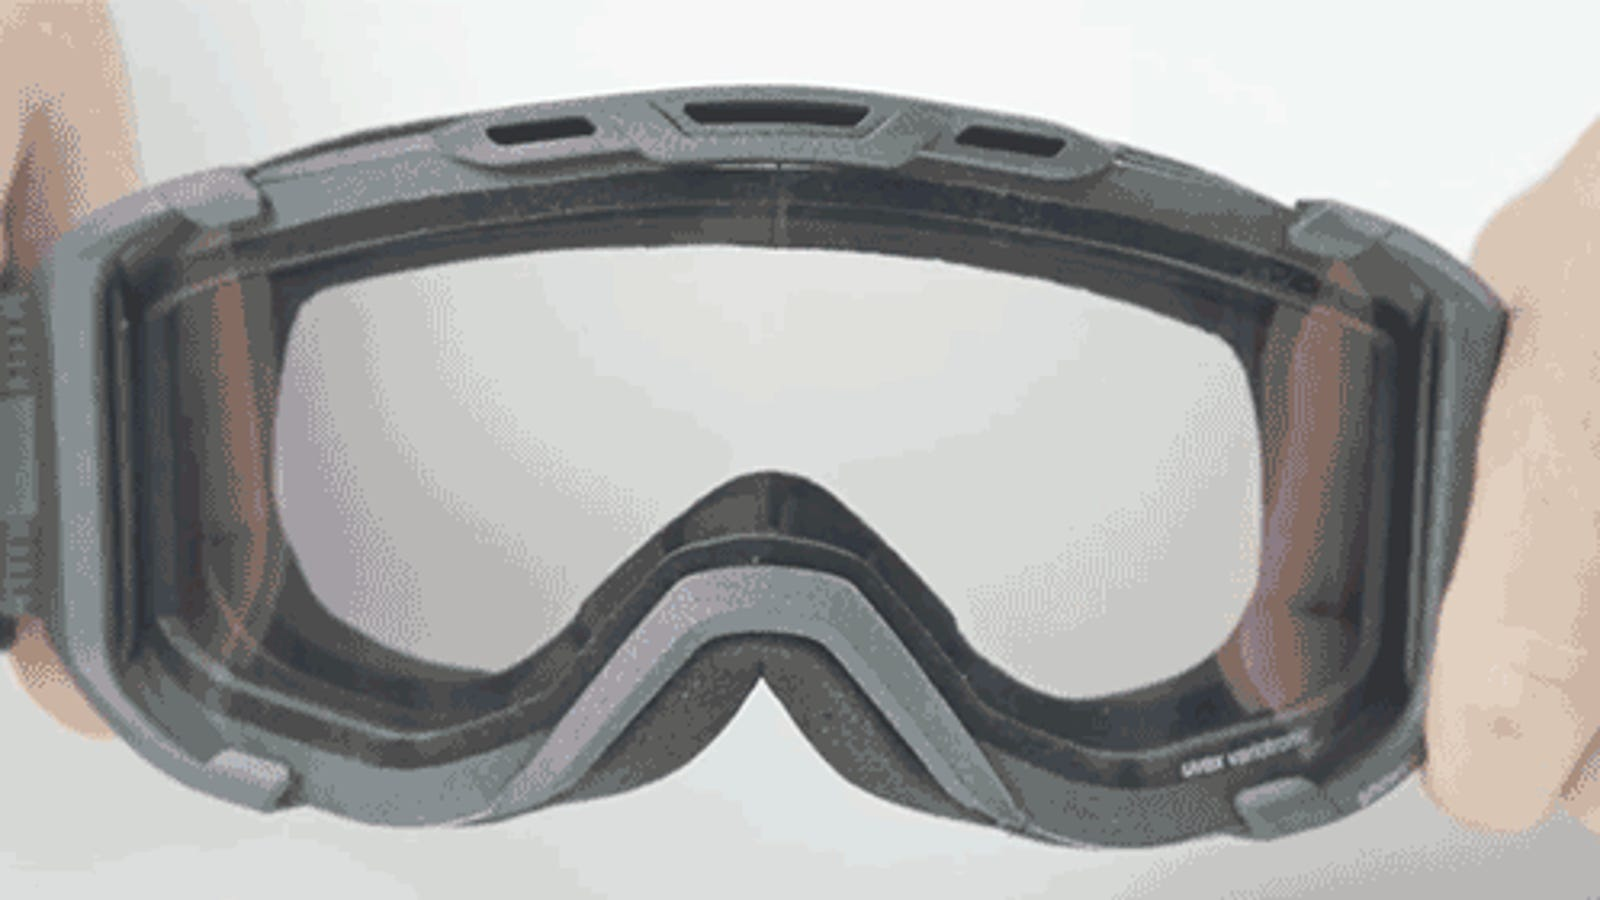 74f521d93 These Ski Goggles Change Color To Adapt To Conditions Around You